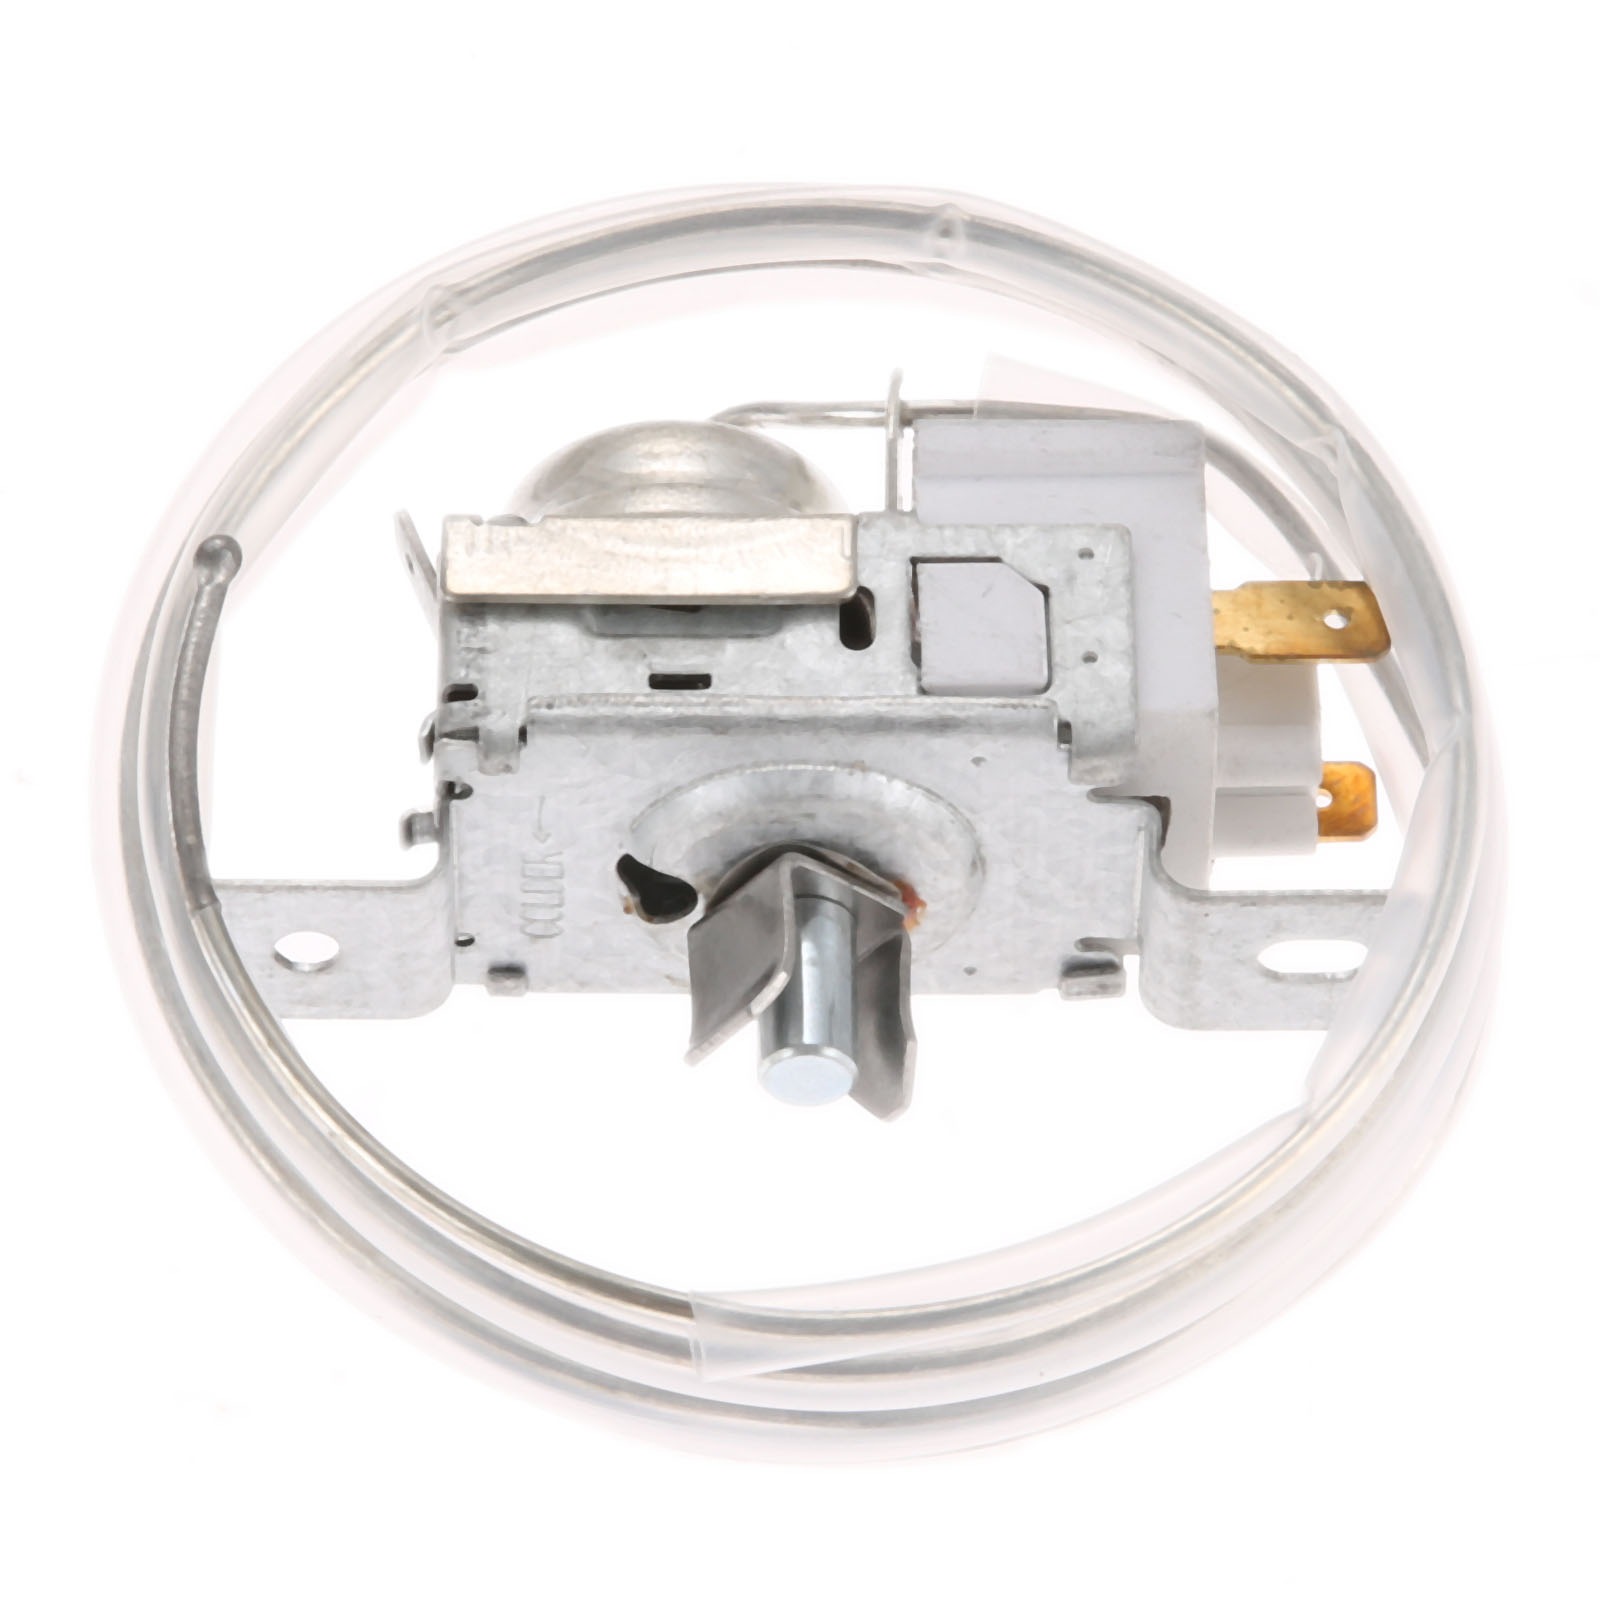 2198202 Refrigerator Cold Control Thermostat Fit For Whirlpool Kenmore AP6006166 2198202